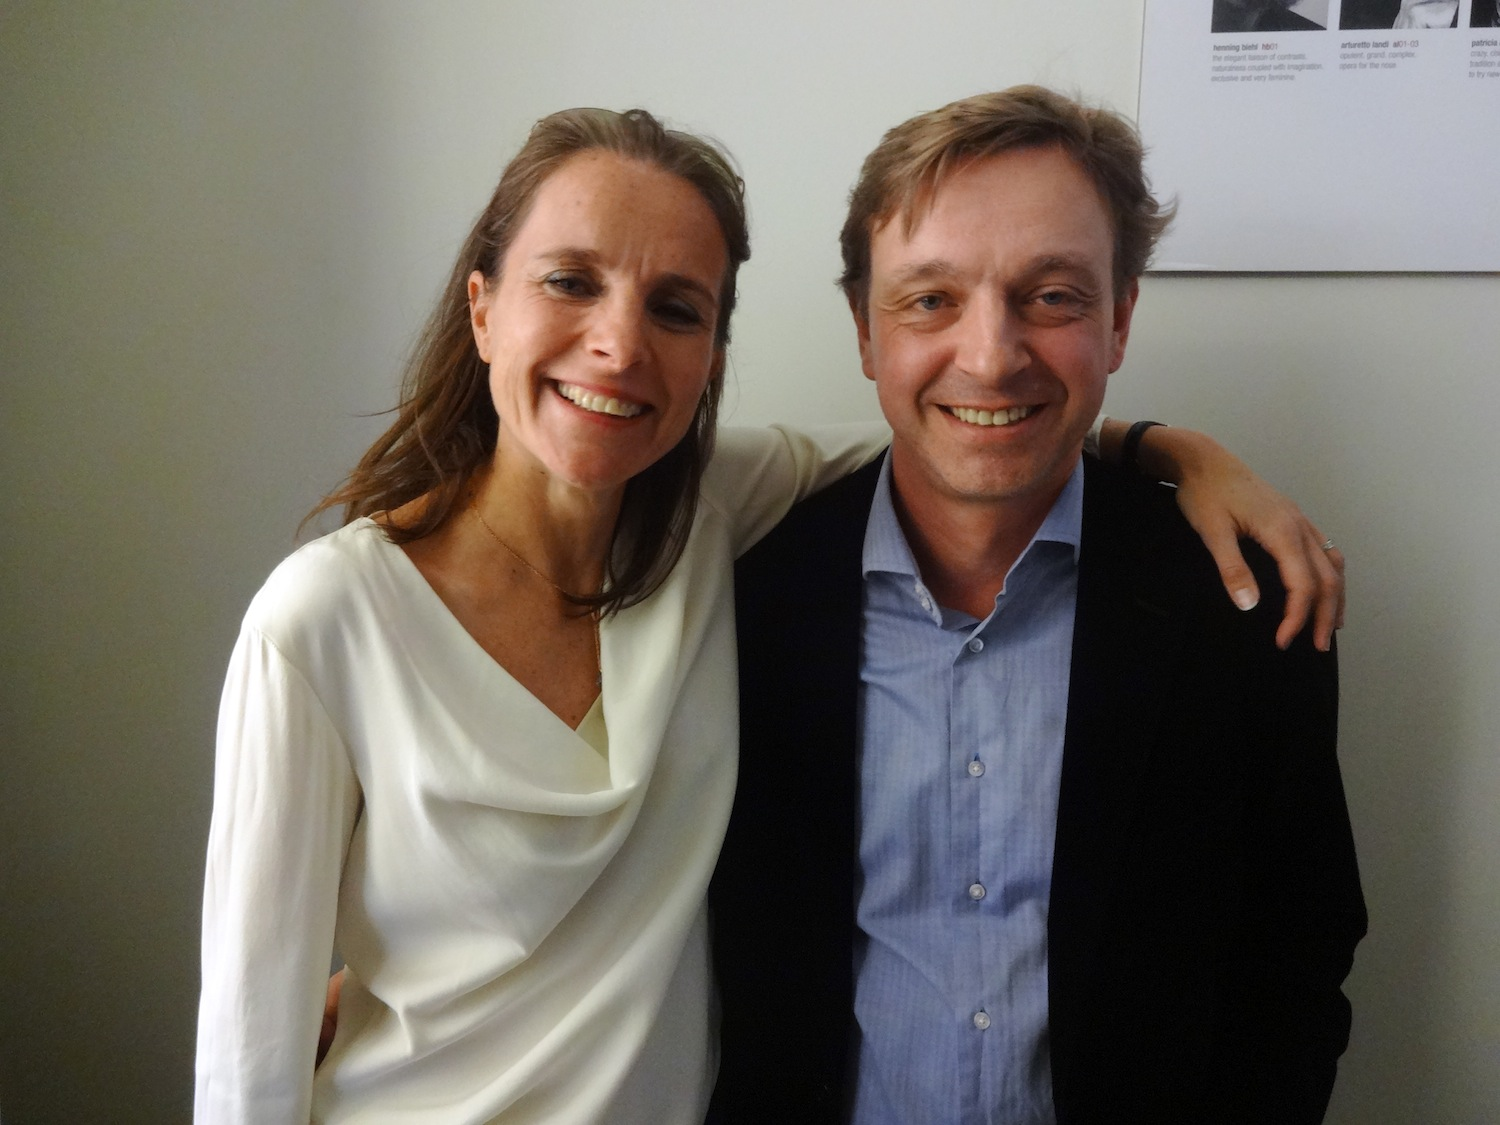 Patricia Choux and Thorsten Biehl